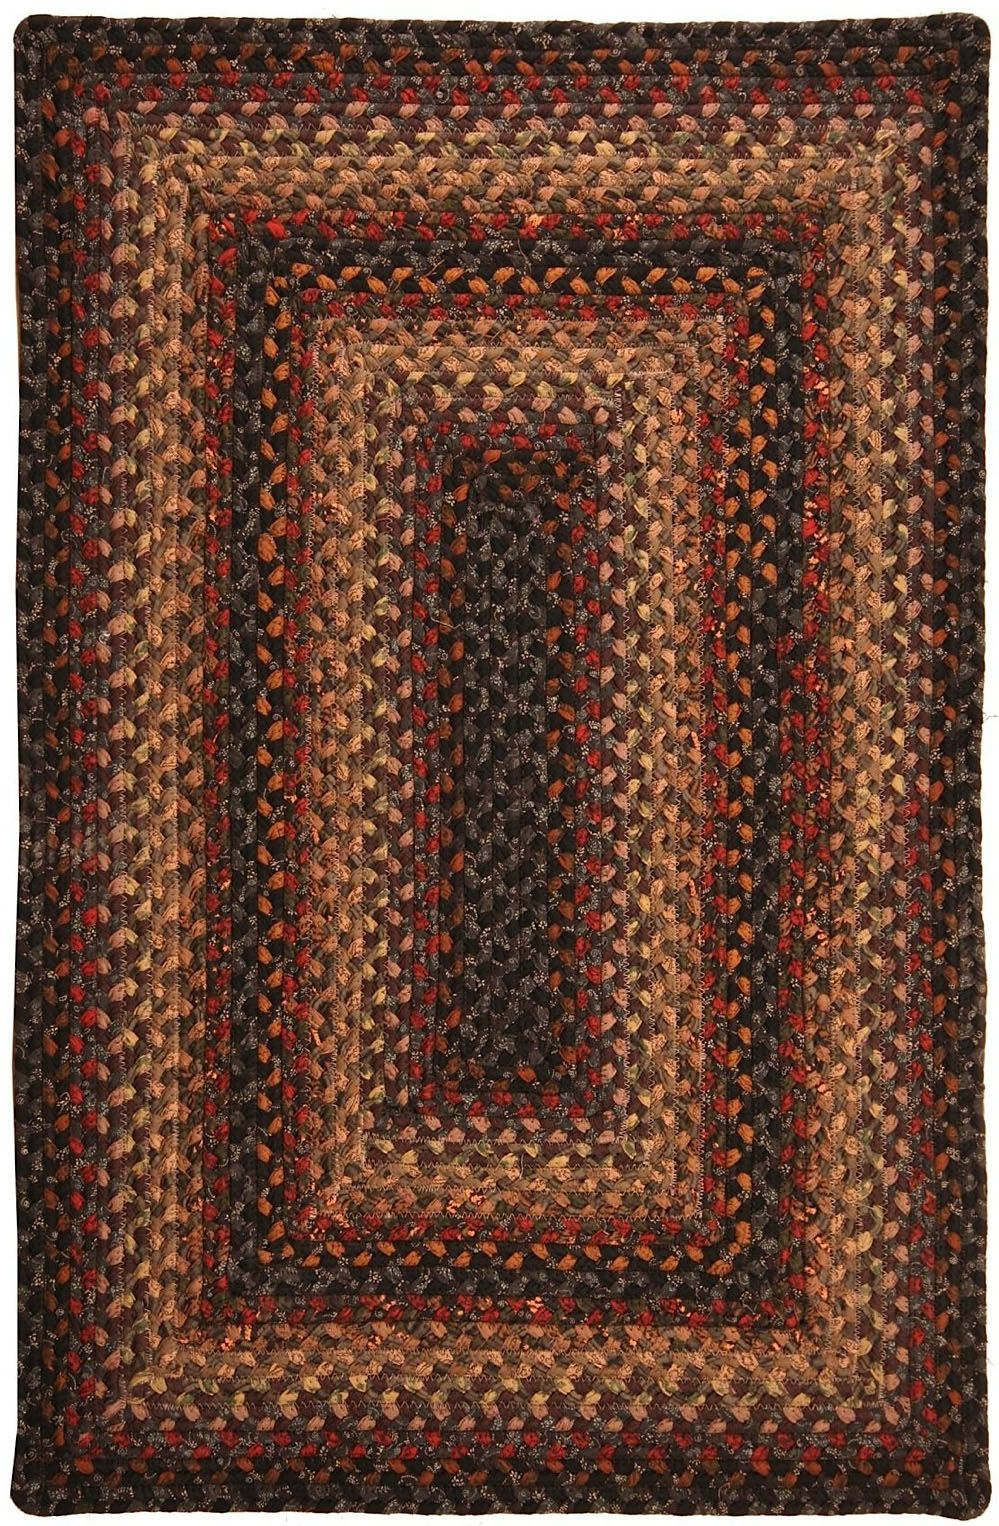 homespice decor enigma braided area rug collection